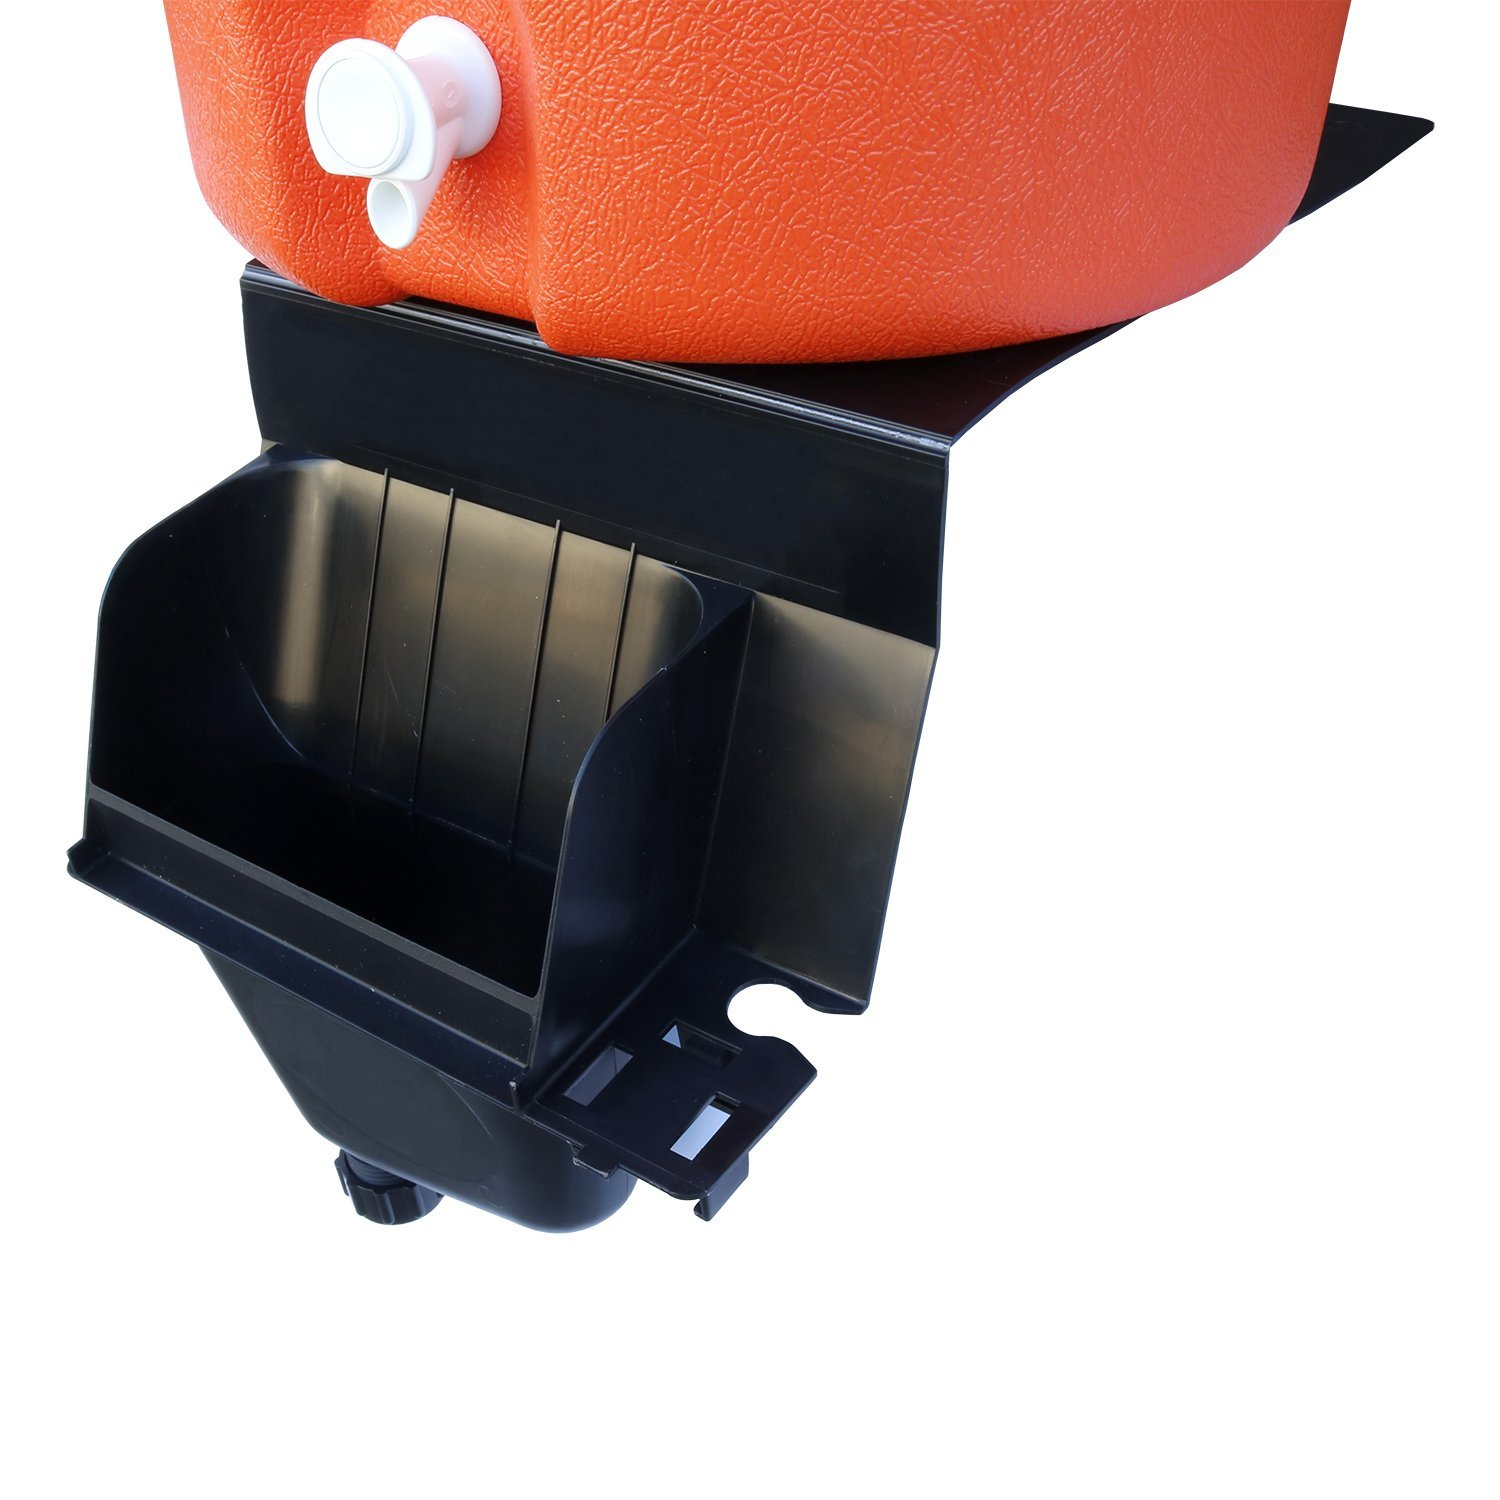 Igloo 5-Gallon Heavy-Duty Beverage Cooler, Orange & Ultimate Drip Catcher Set - Black - Catch All Your Drips, Seeps, Leaks Accidental Pours! by Igloo (Image #5)